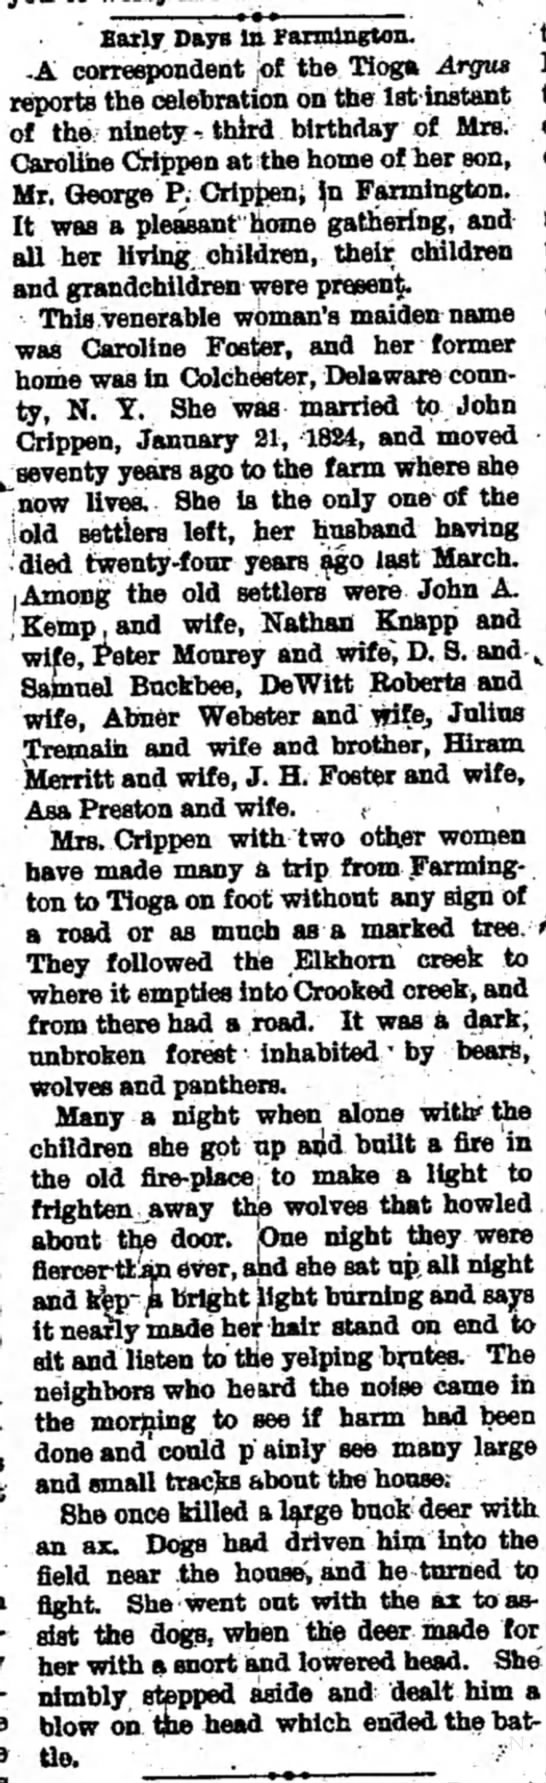 lists asa preston as one of the first settlers of Farmington township -